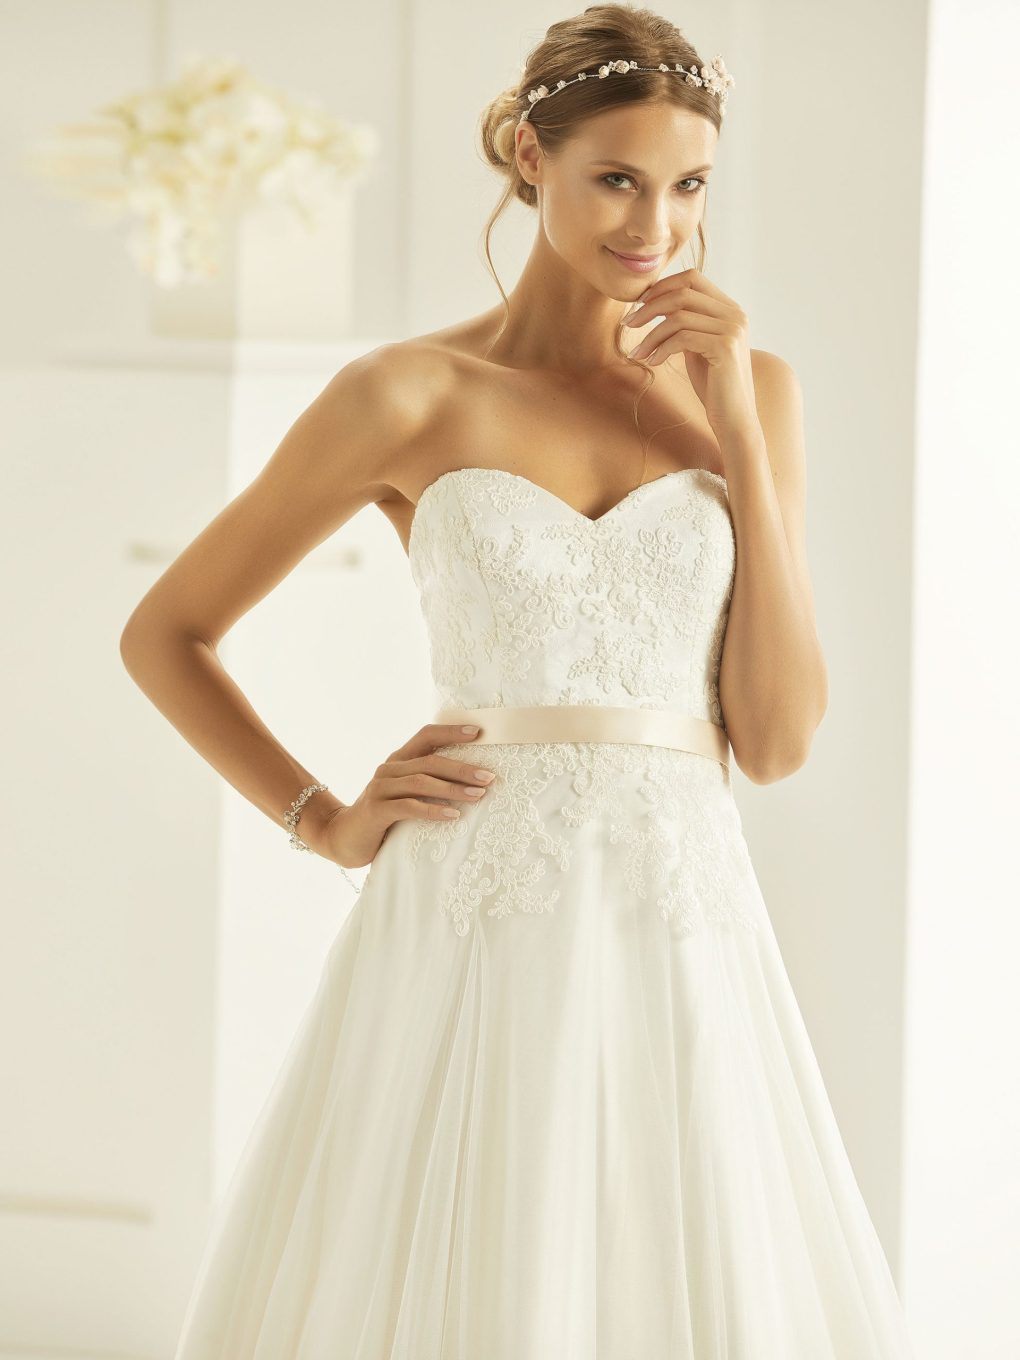 Wedding Dresses For A Big Bust